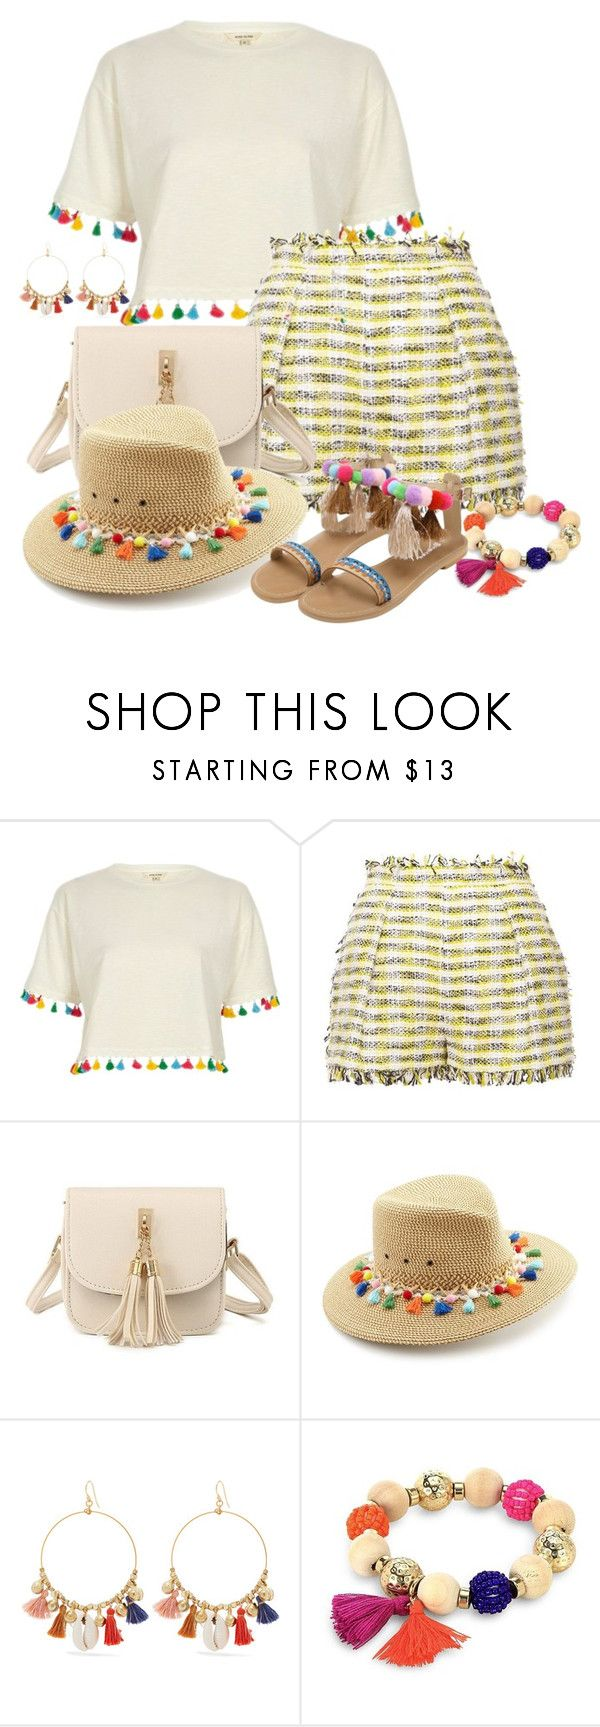 """""""Fringe/Tassel Fashion - Contest!!!"""" by sarahguo ❤ liked on Polyvore featuring River Island, MSGM, Eric Javits, Chan Luu and Robert Rose"""